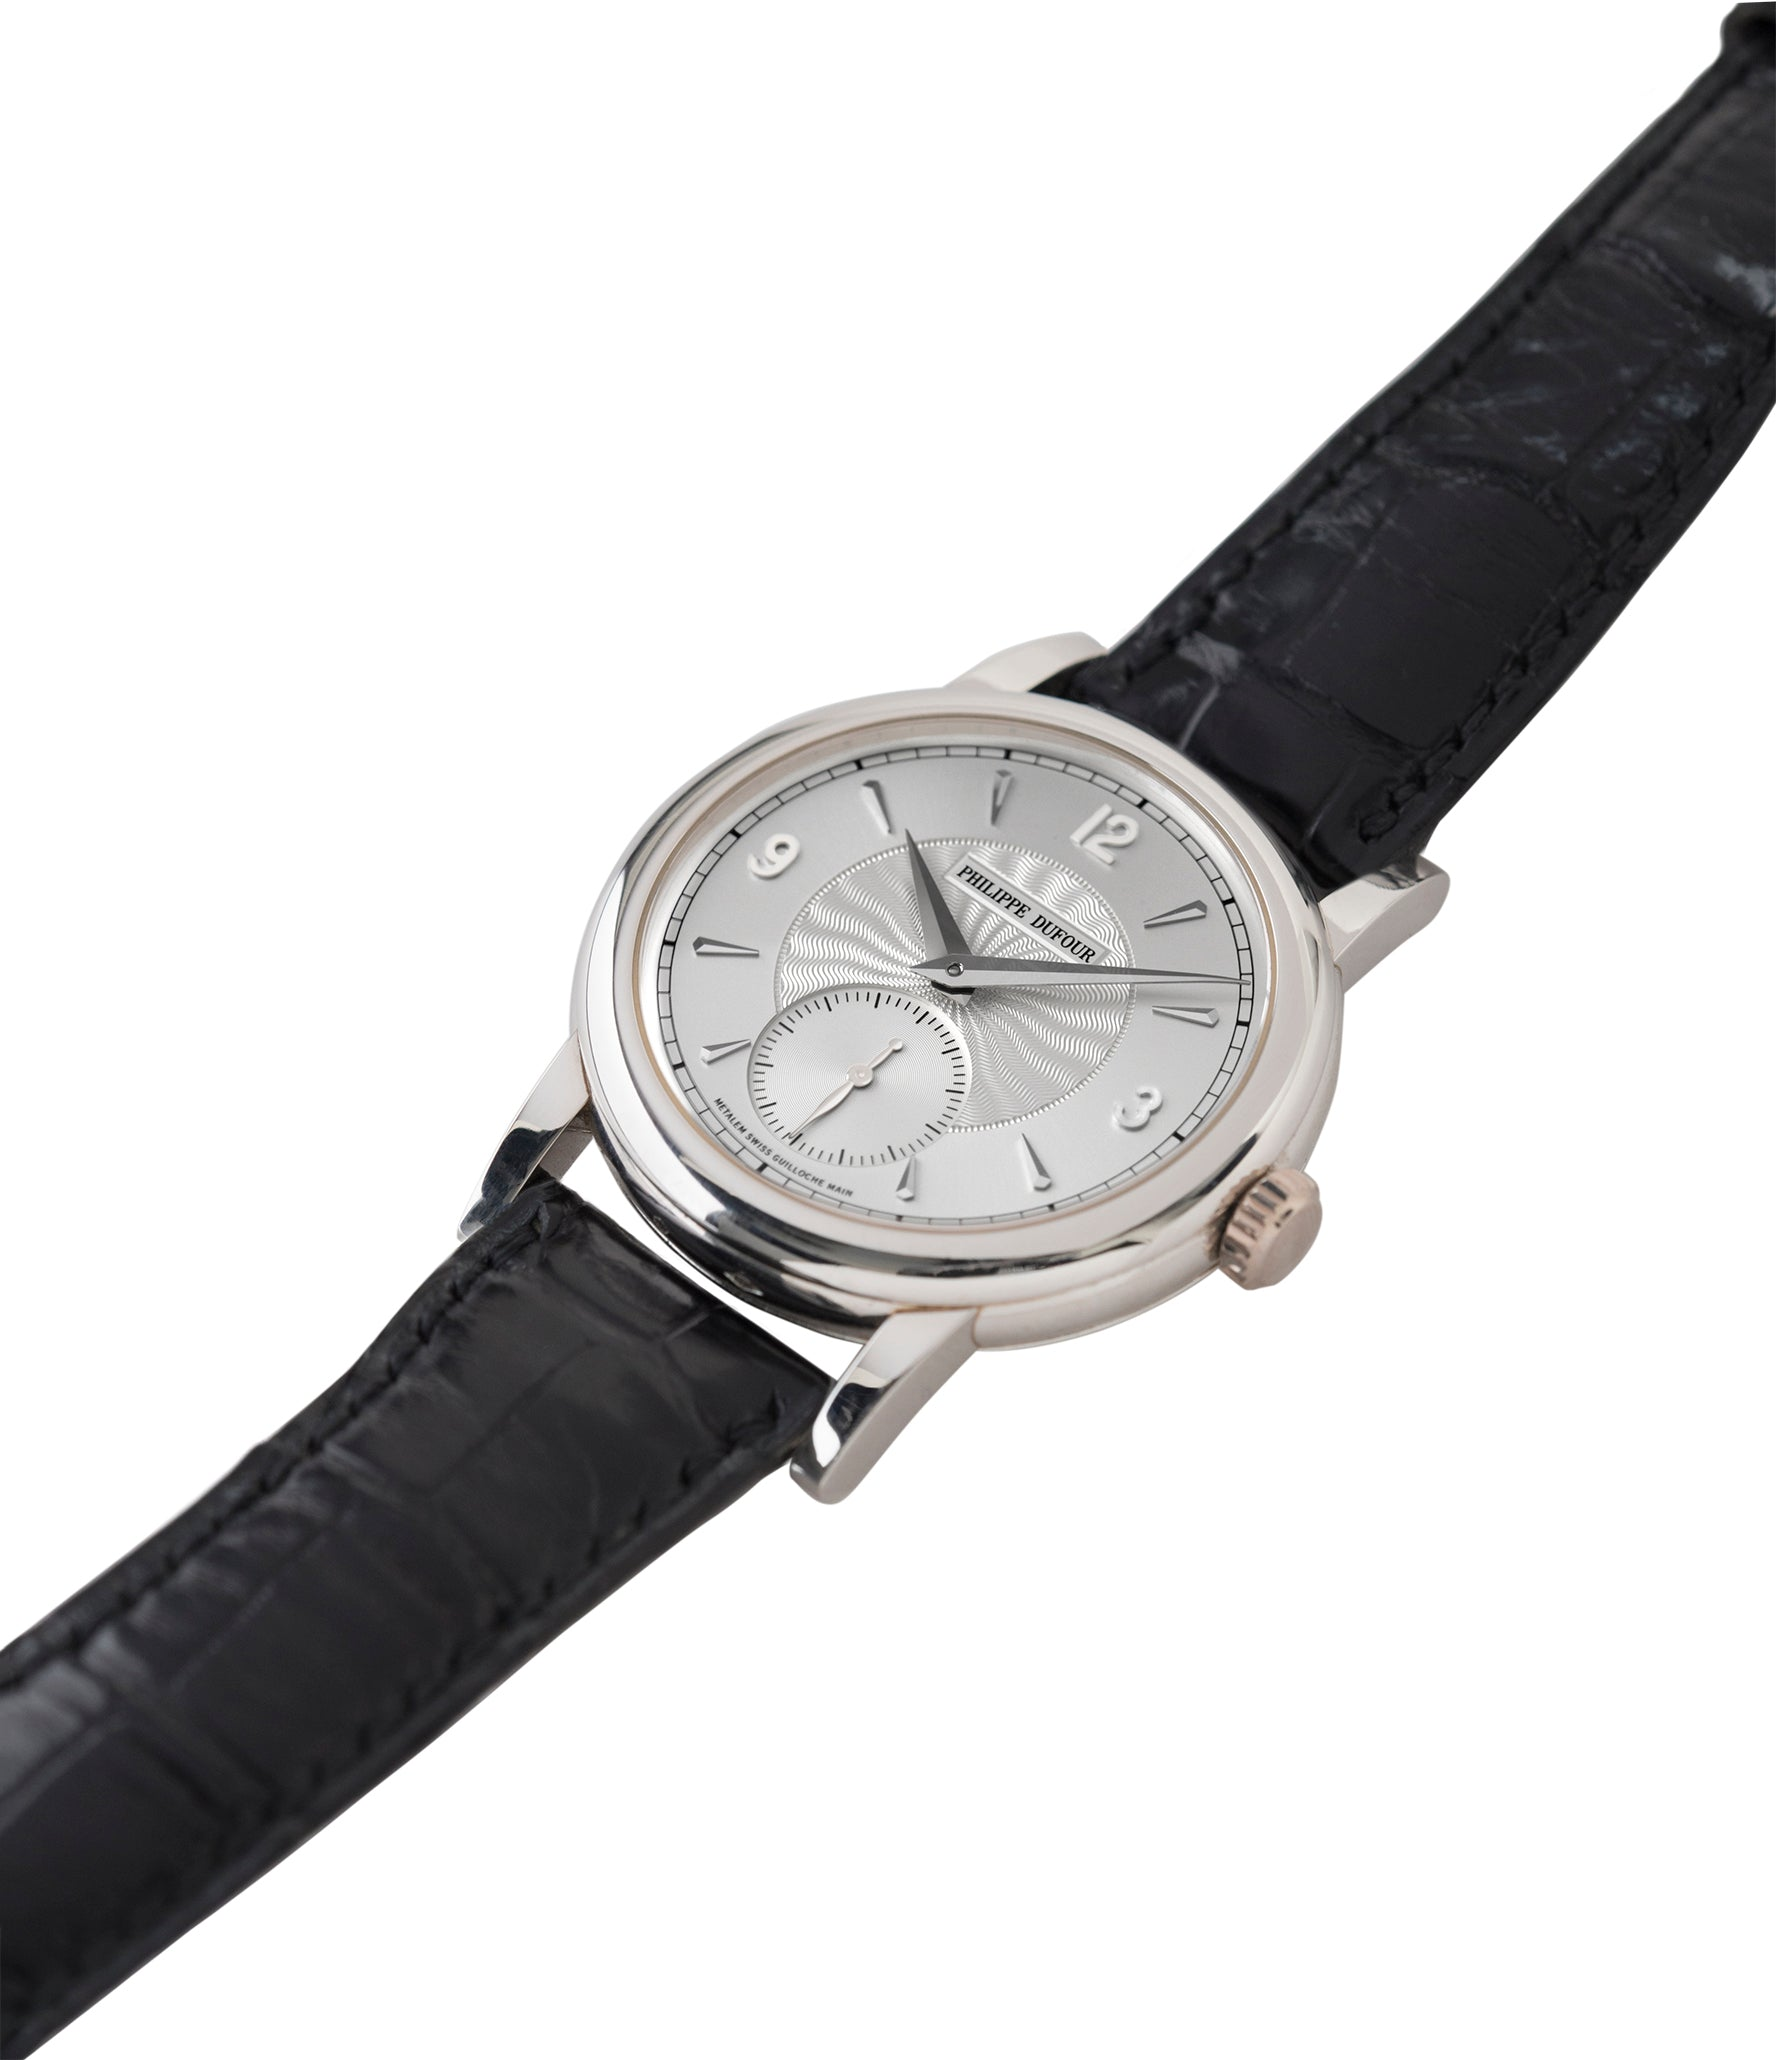 Simplicity watch for sale by Philippe Dufour platinum time-only dress watch for sale online at A Collected Man London UK approved specialist of preowned independent watchmakers